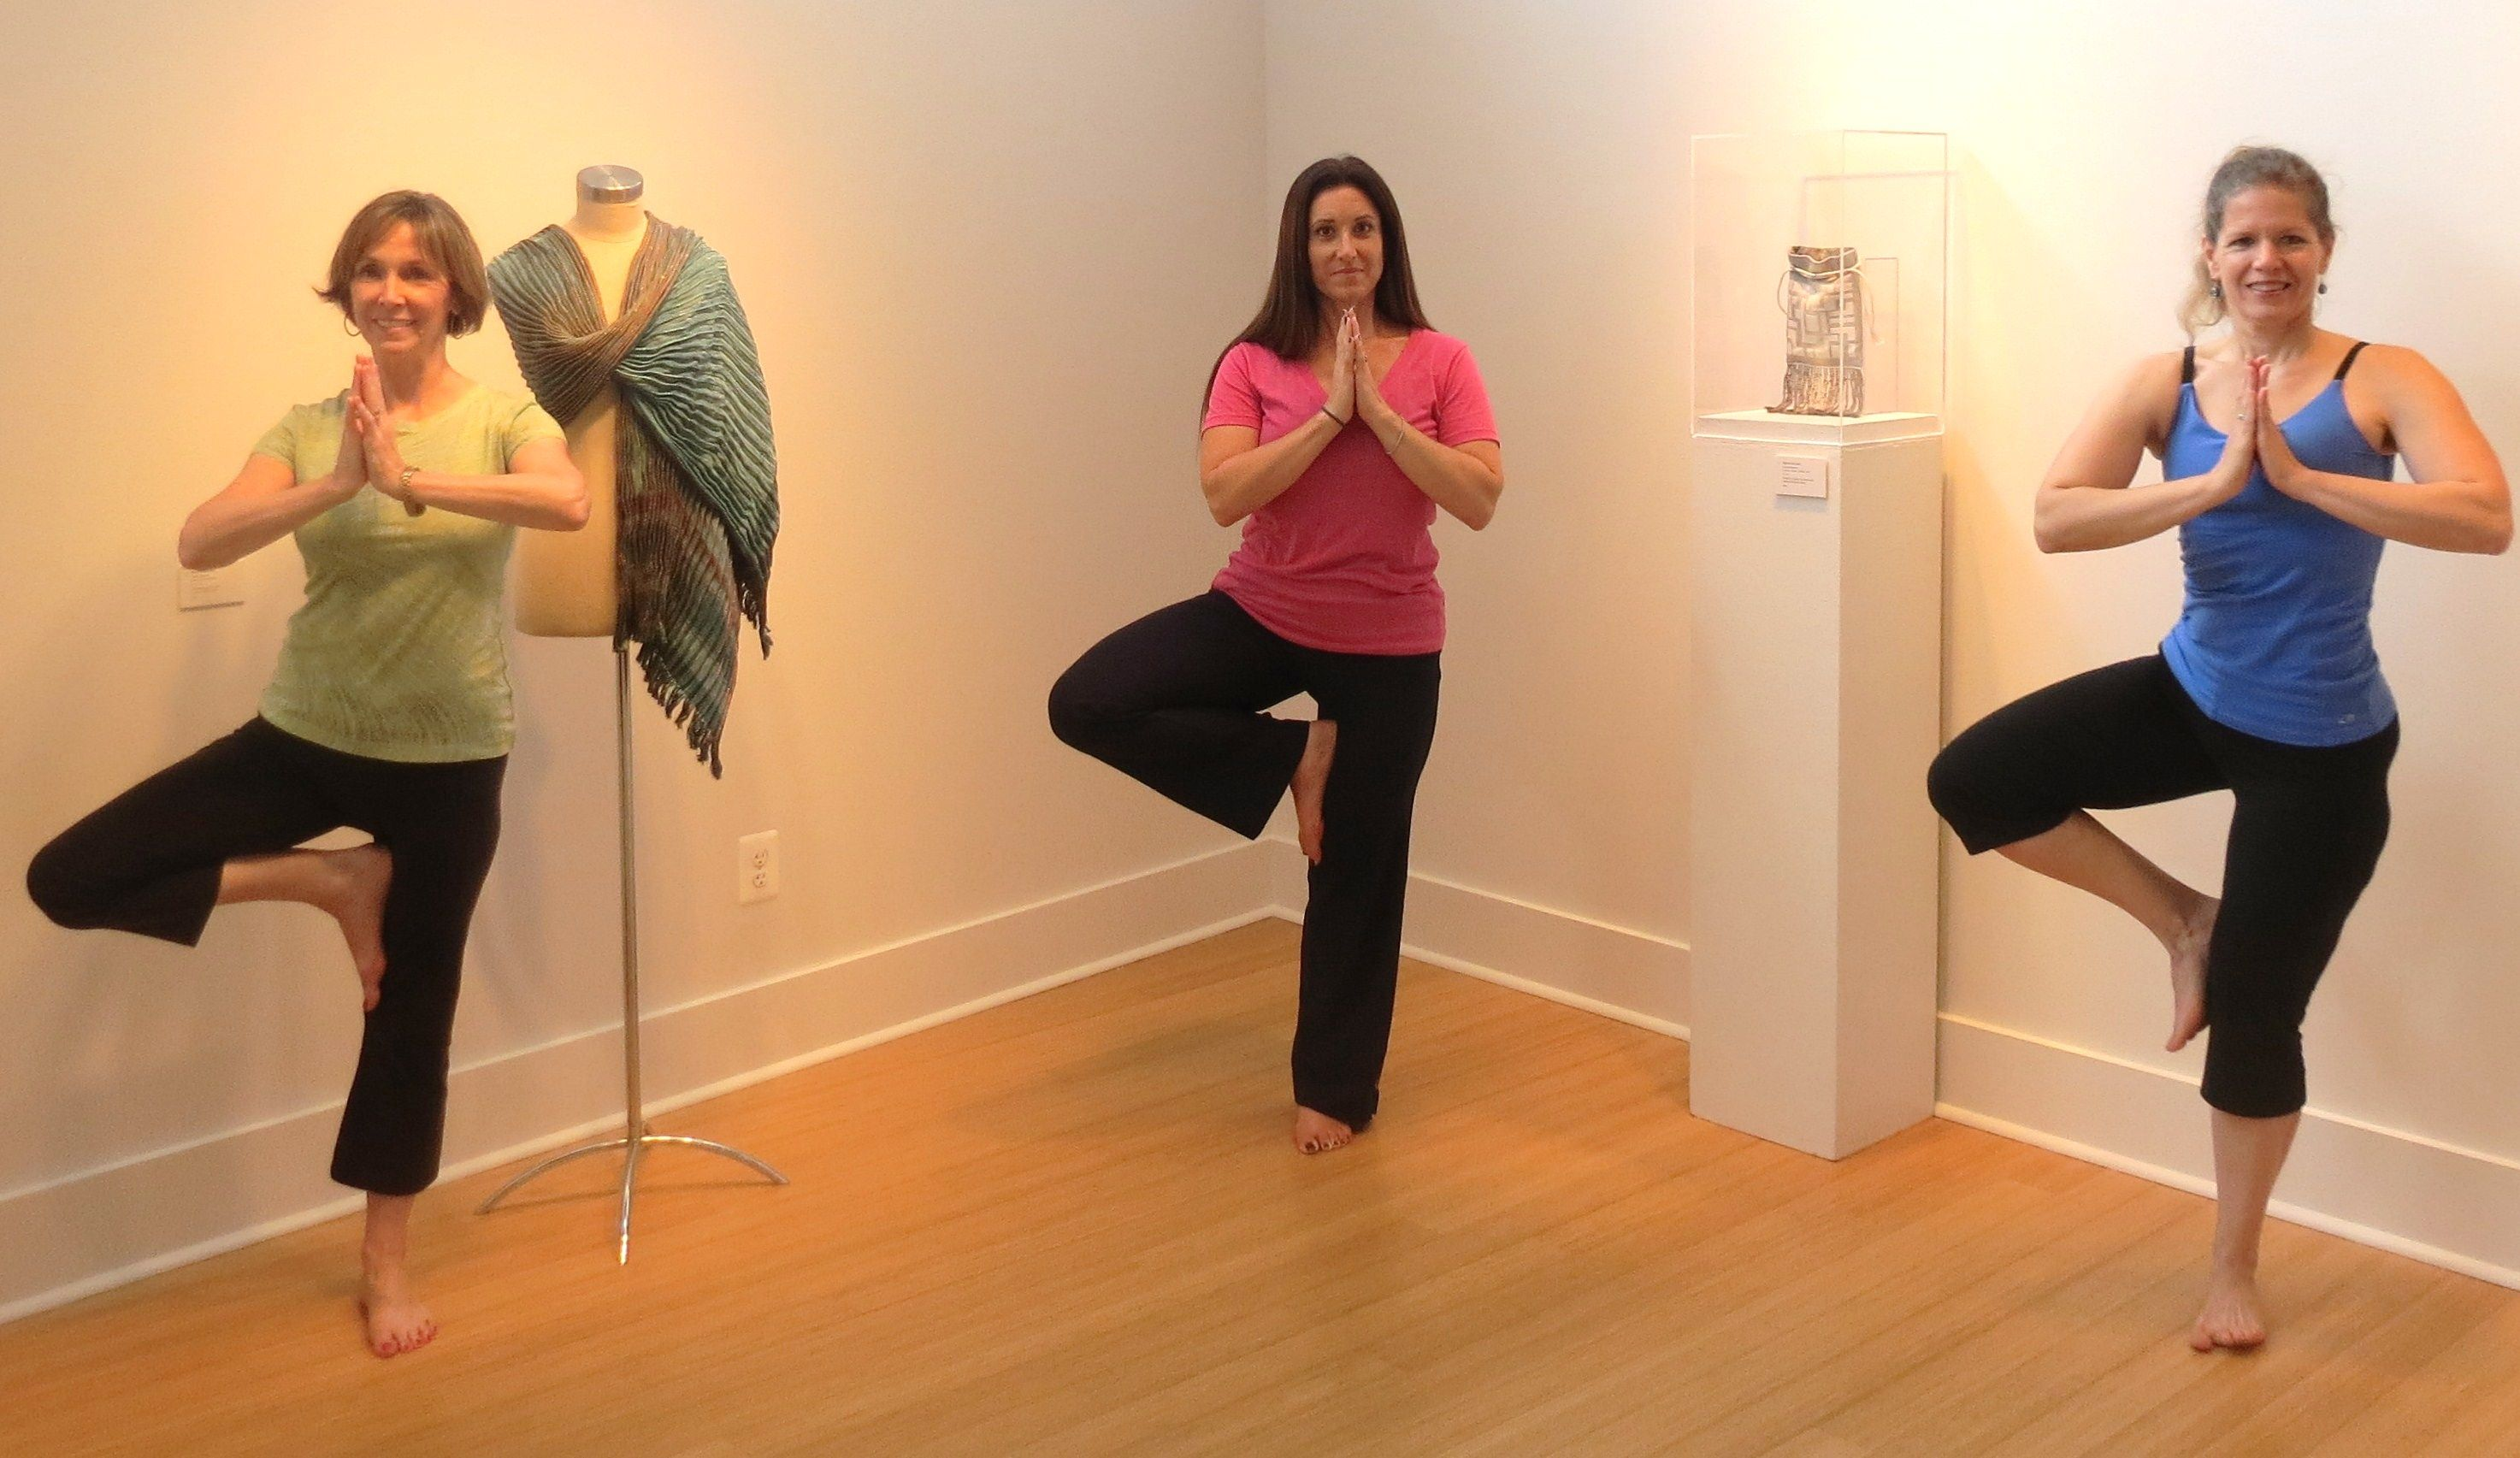 My specialty, yoga in art galleries, especially Capitol Art Network.